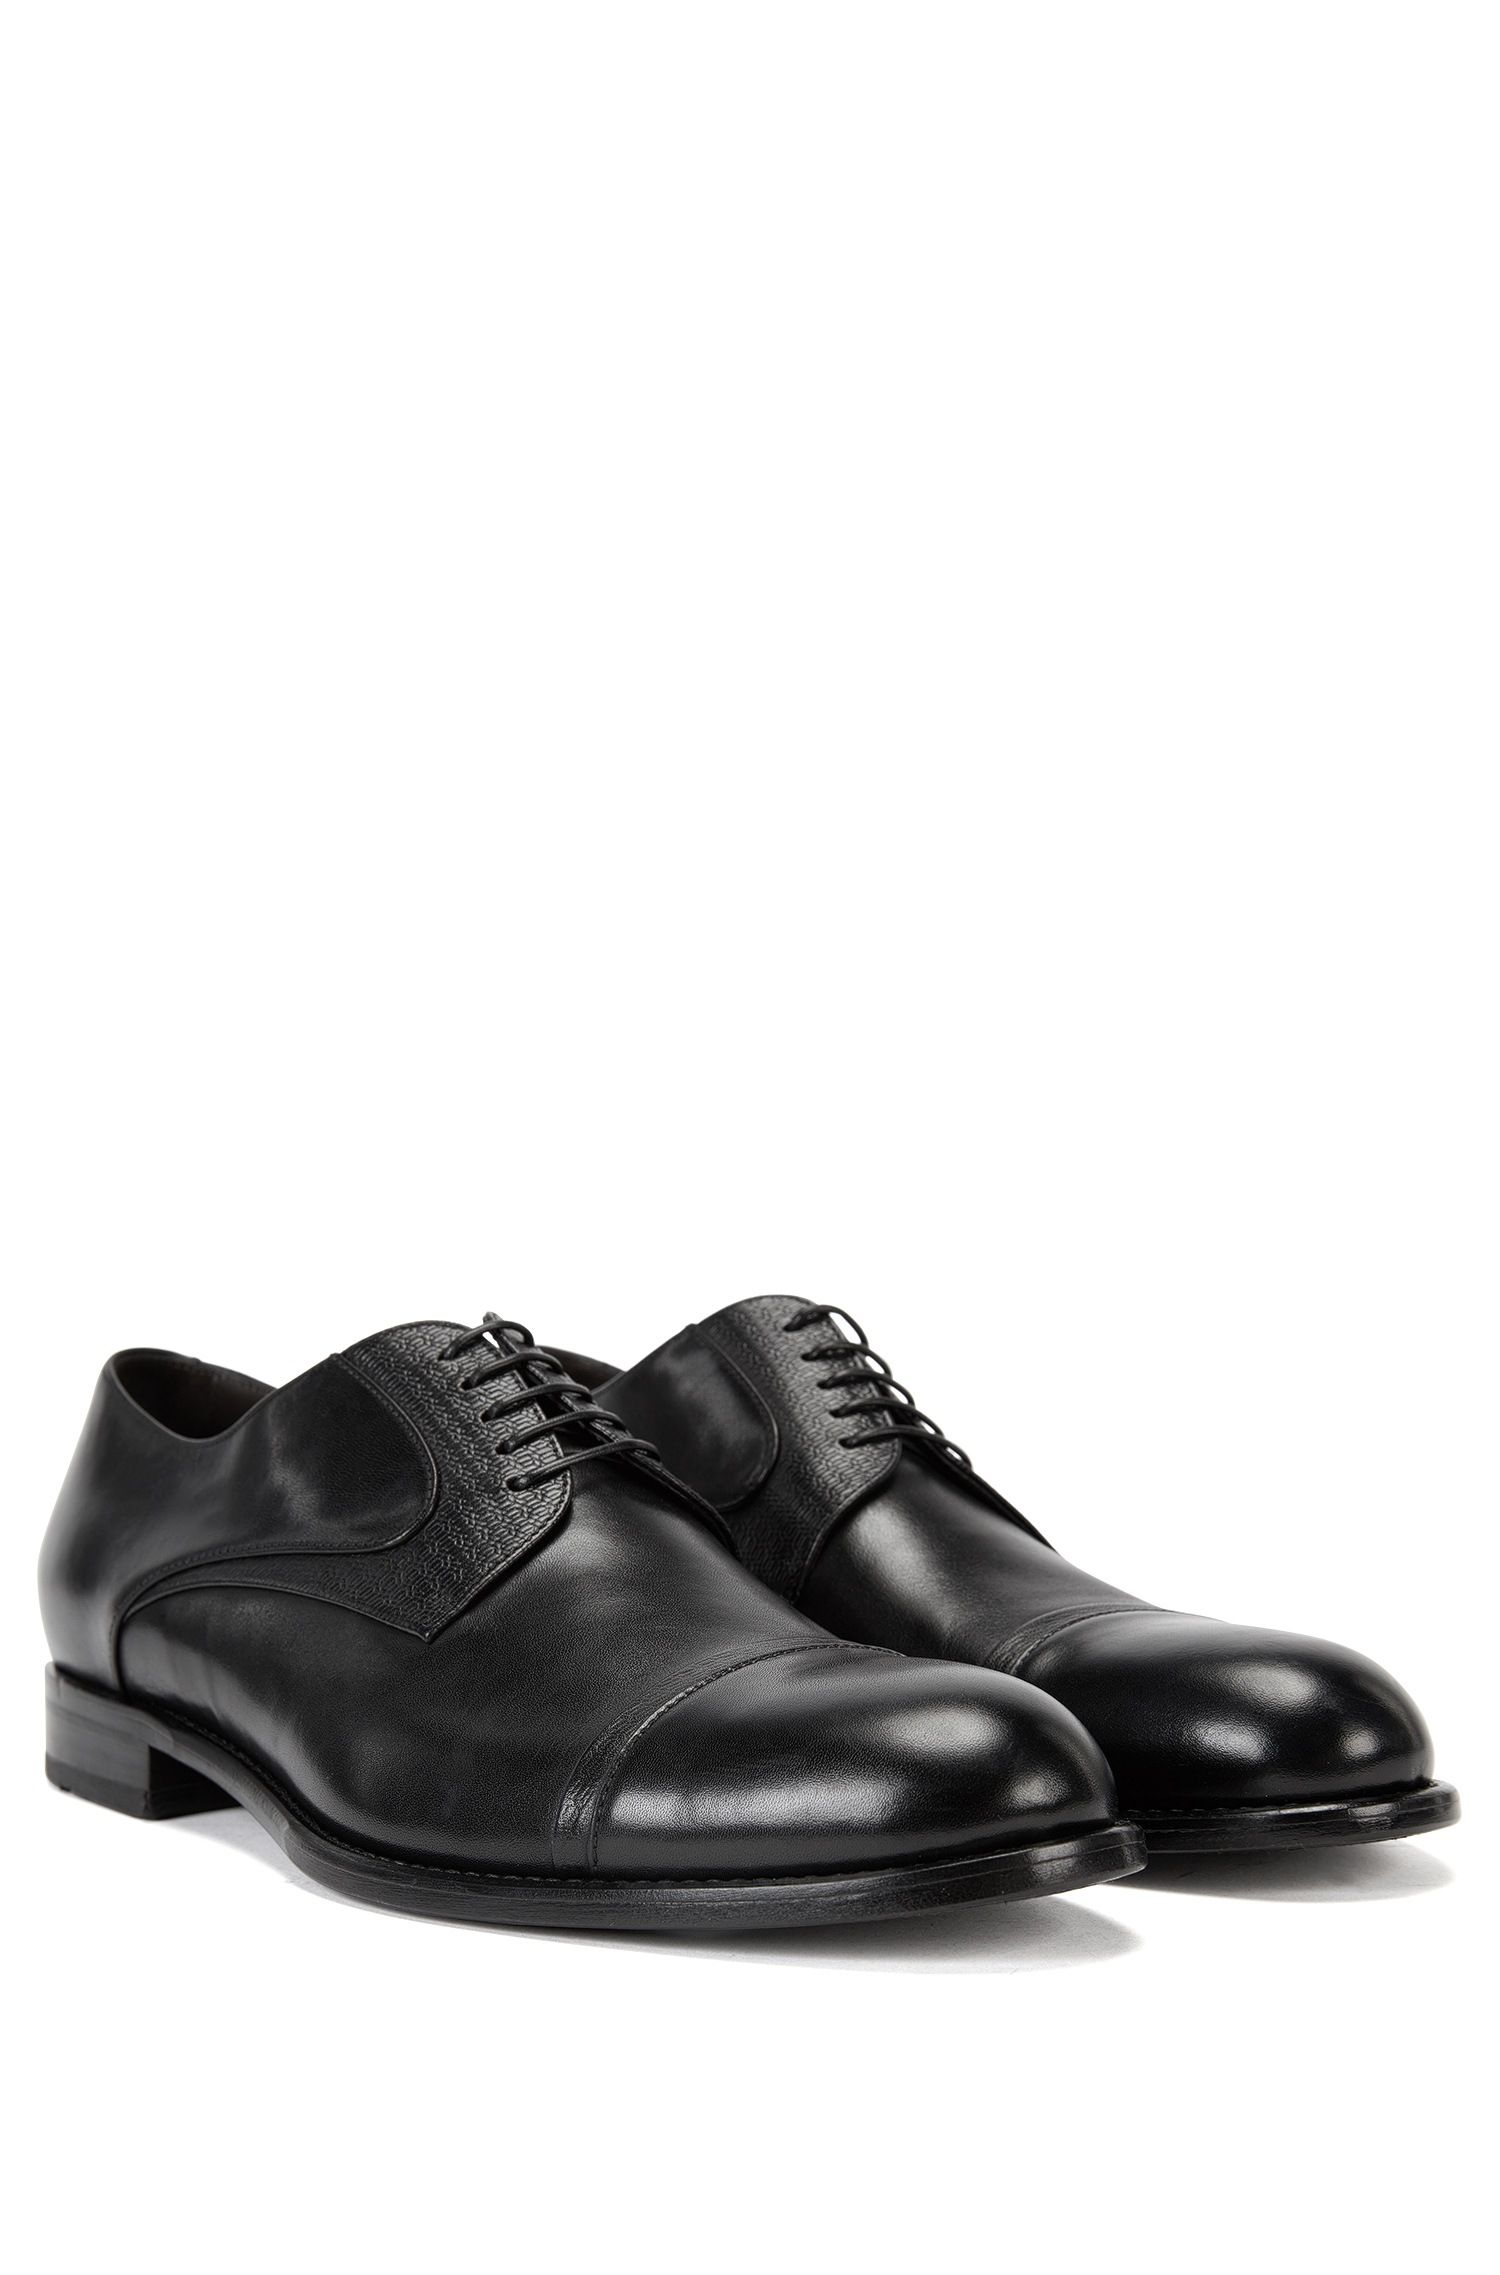 Derby shoes with embossed leather upper BOSS Q6Hdm3U60